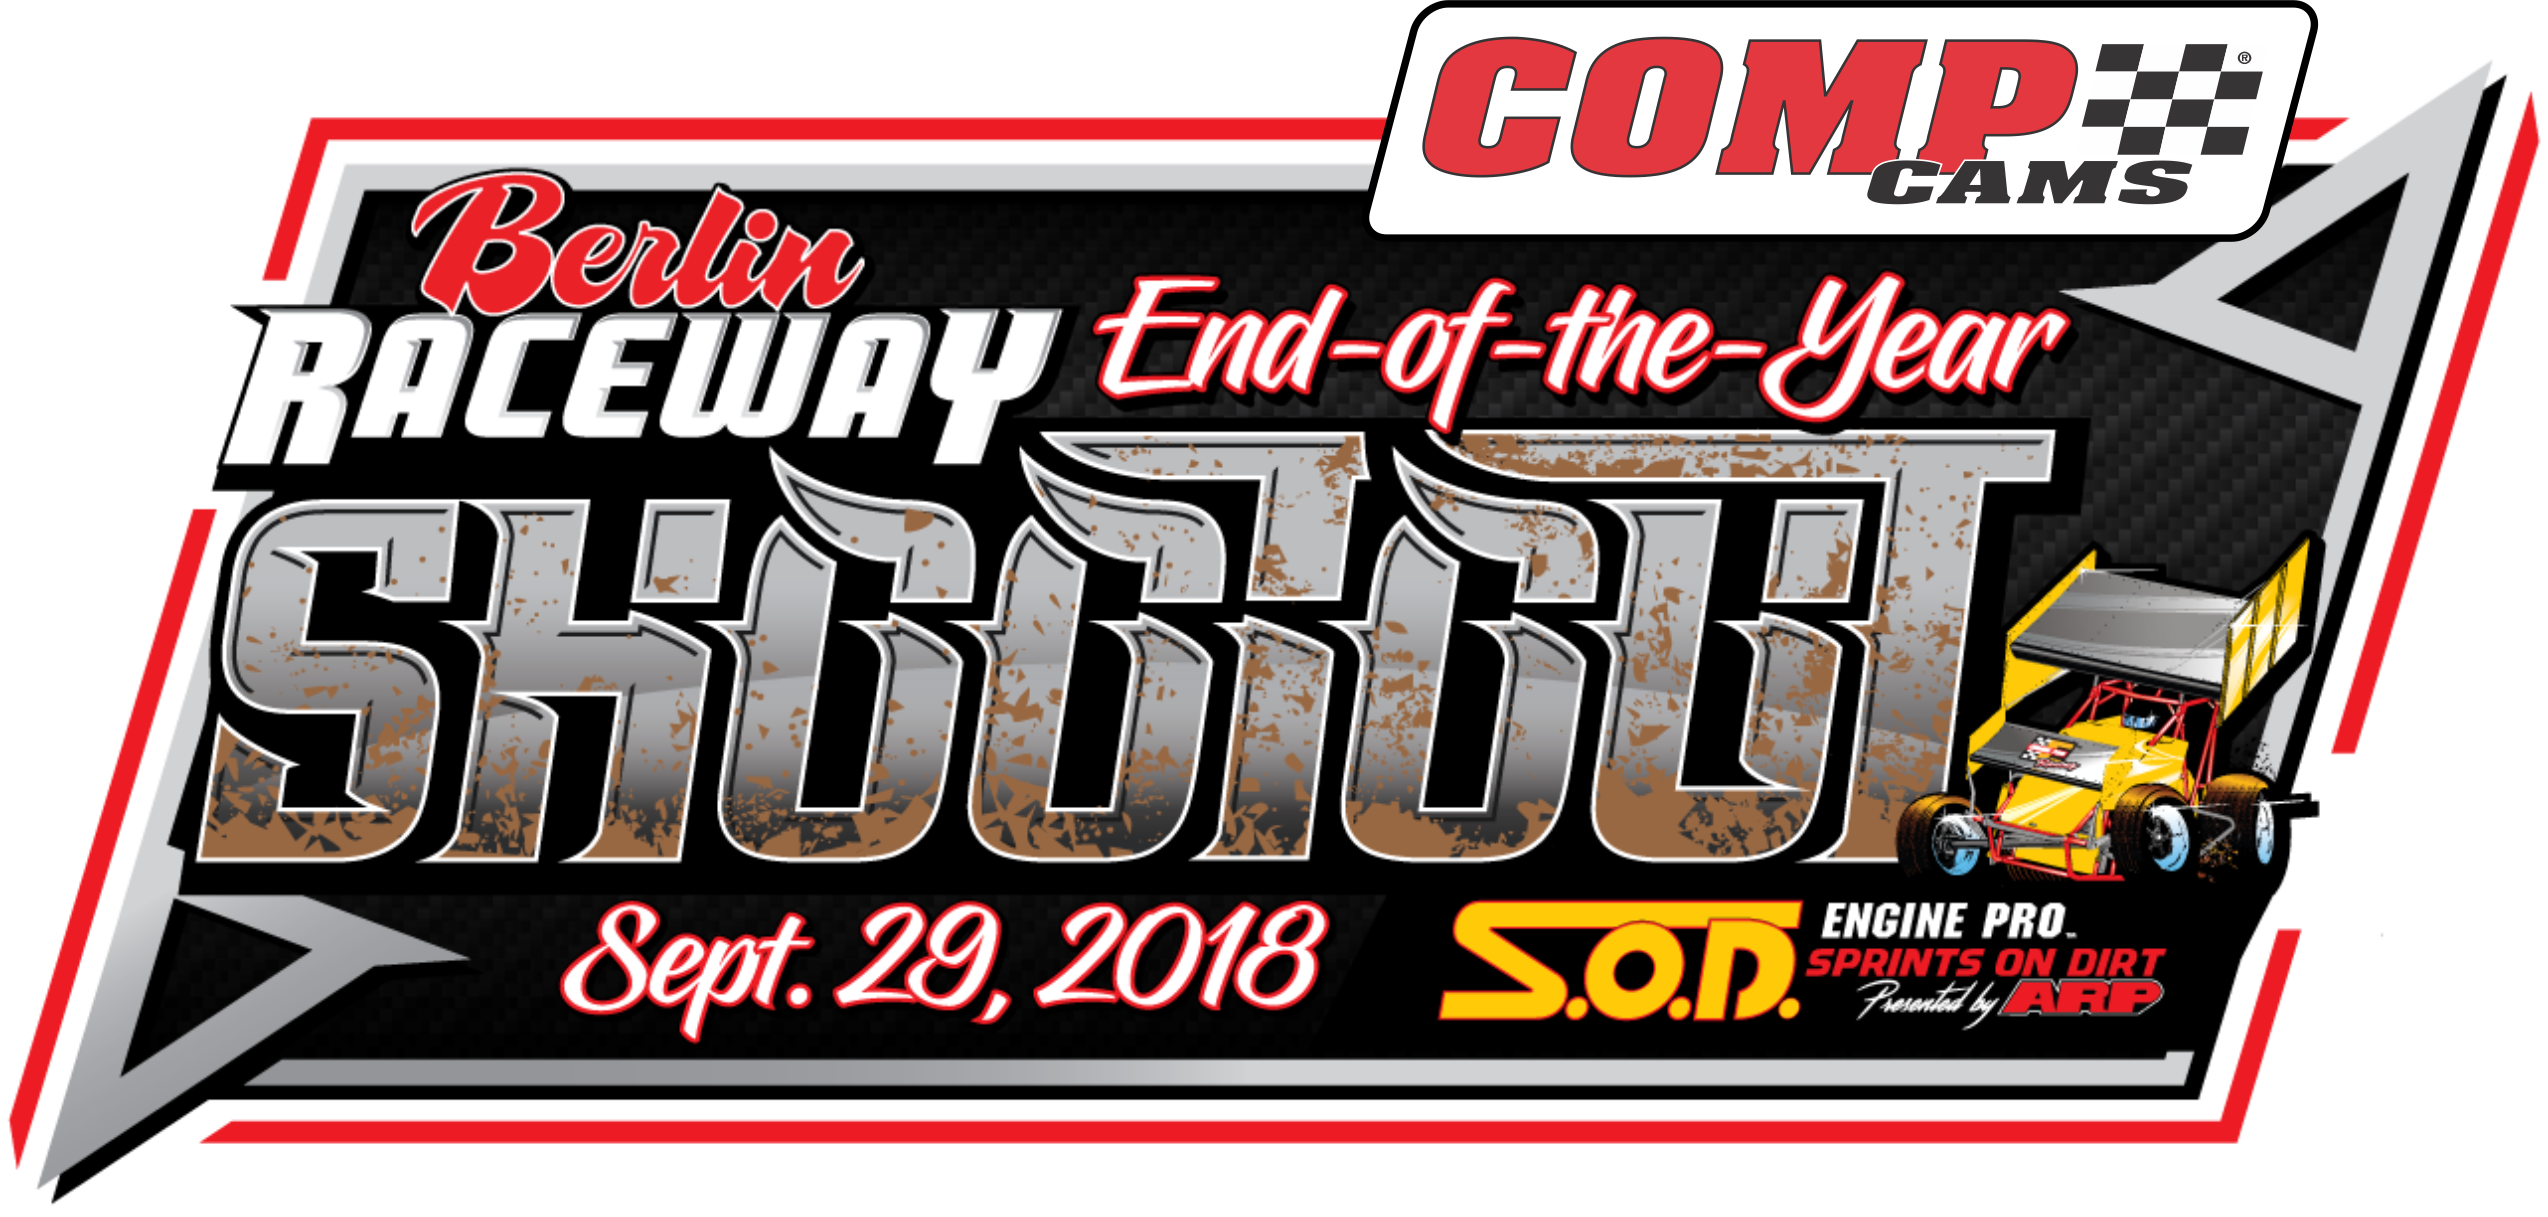 COMP Cams title sponsor of SOD End-of-the-Year Shootout at Berlin Raceway